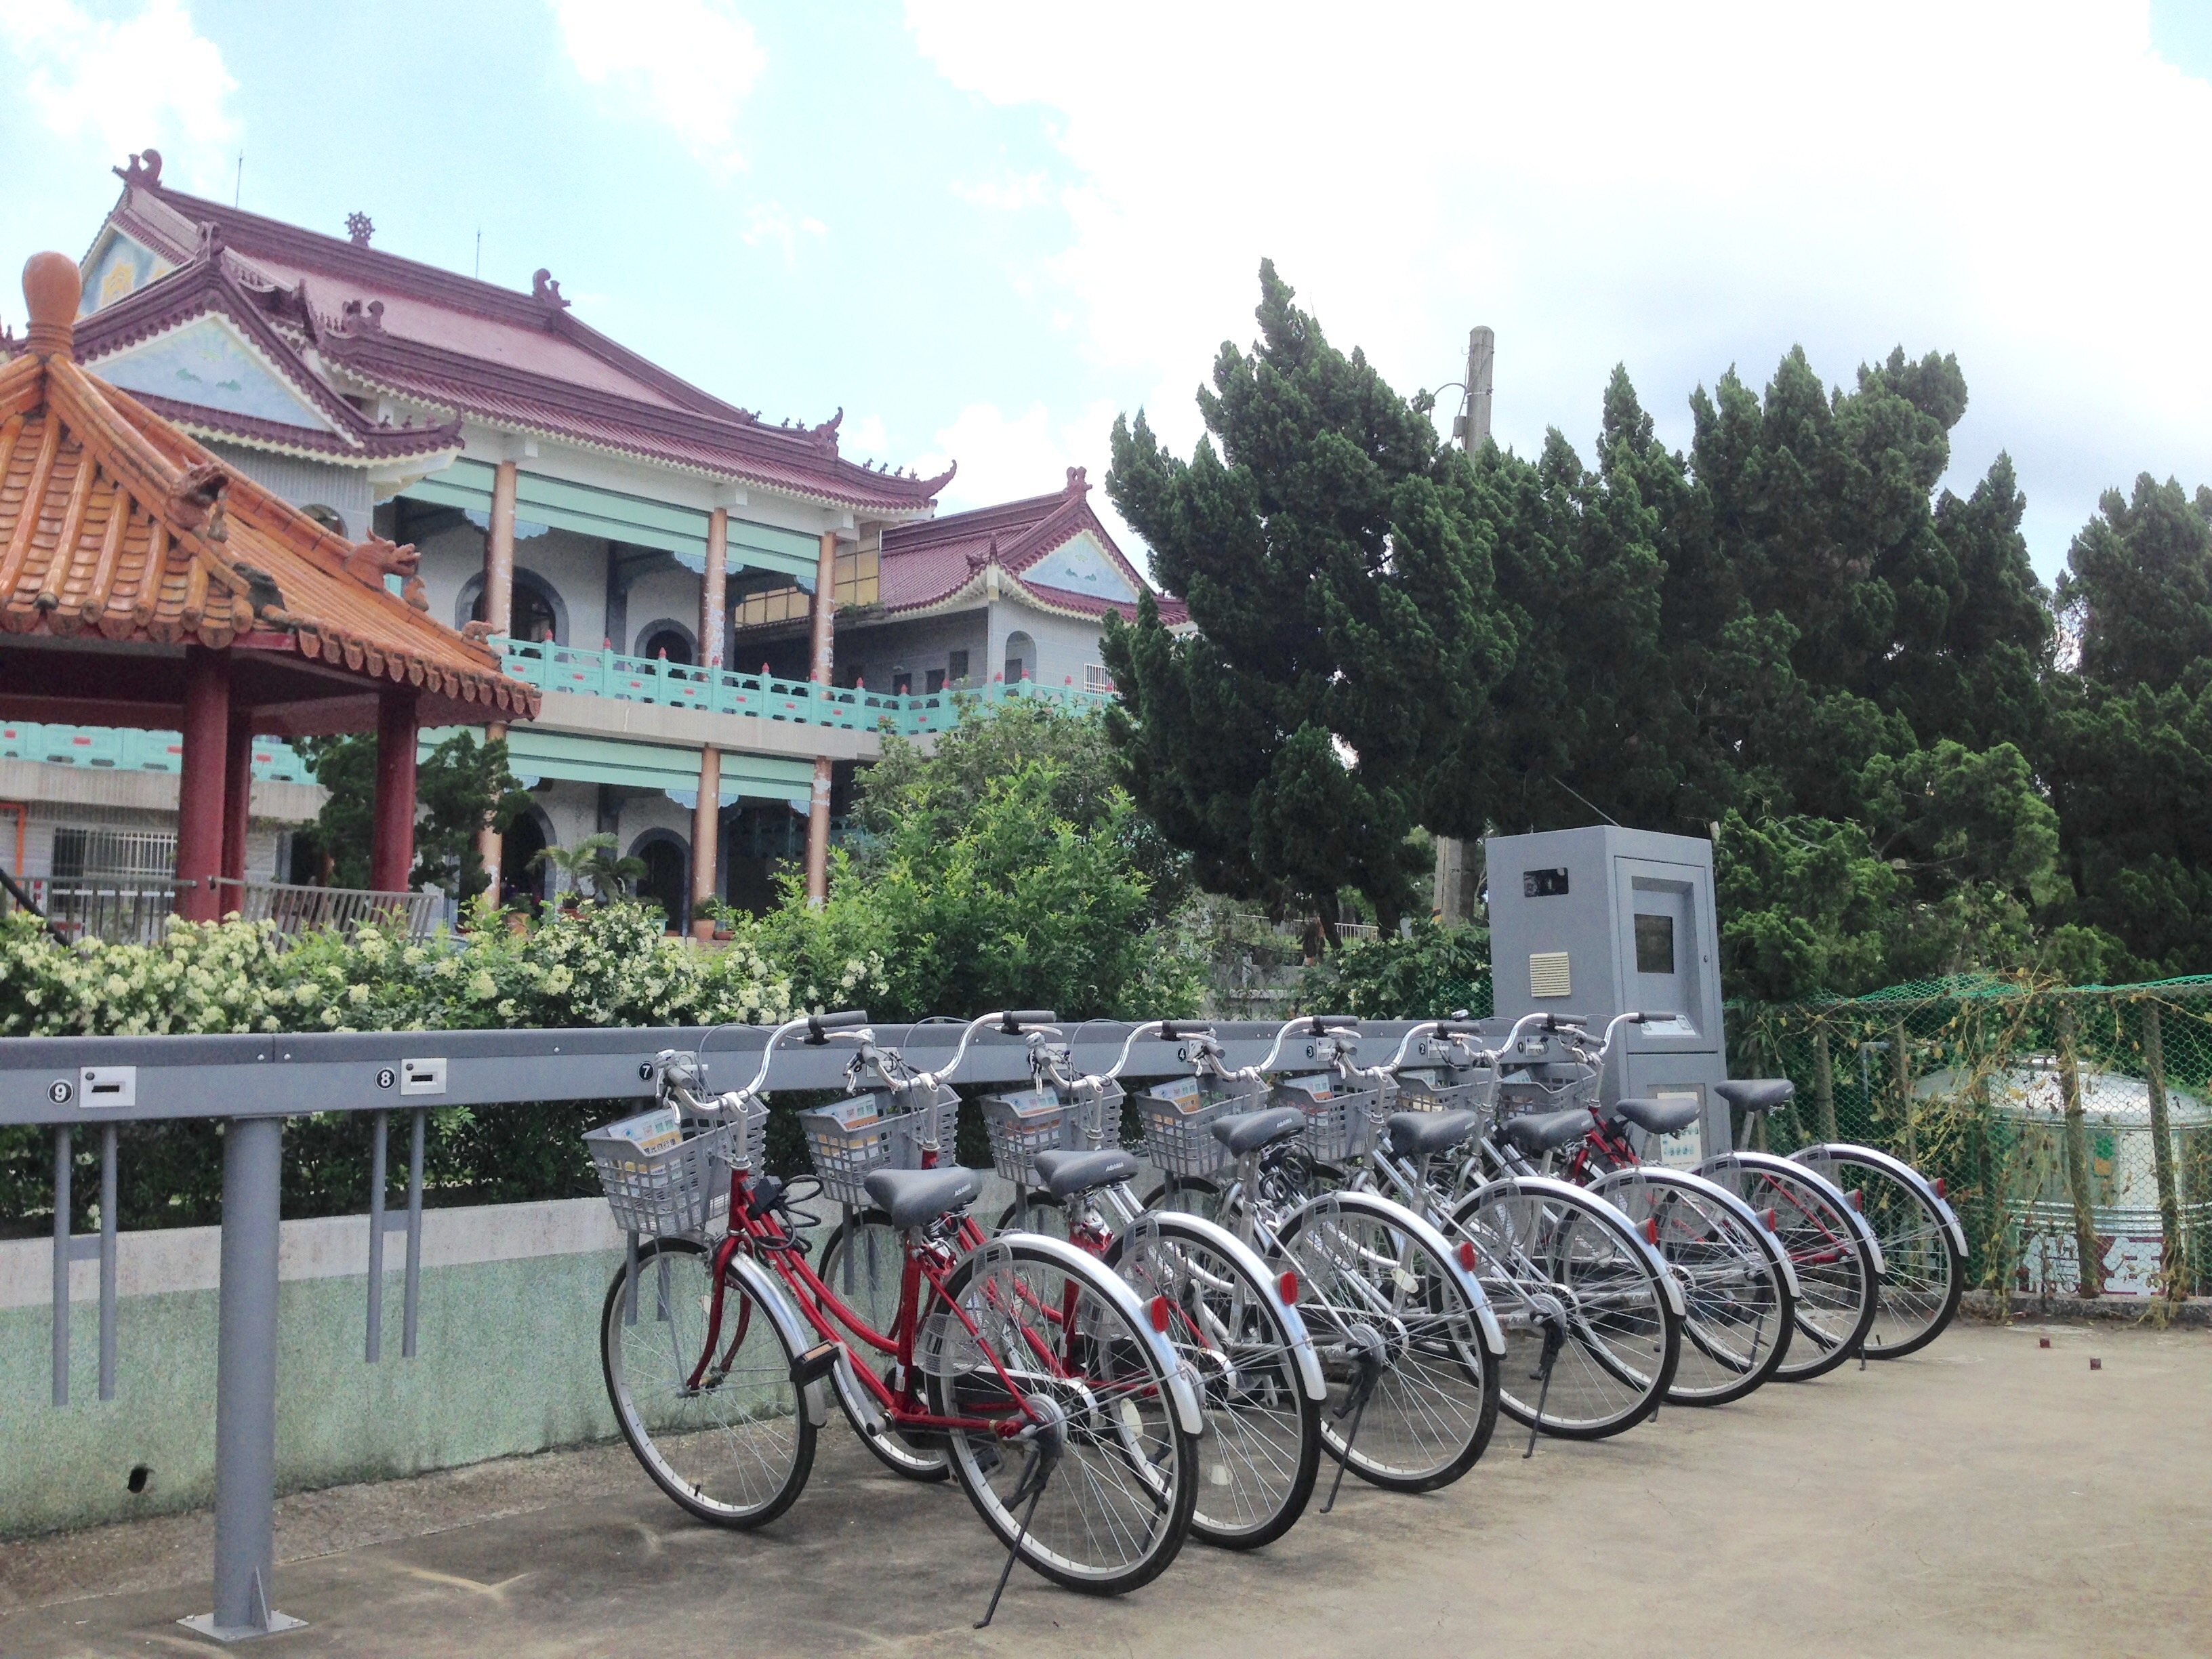 T-Bike station in Tainan.